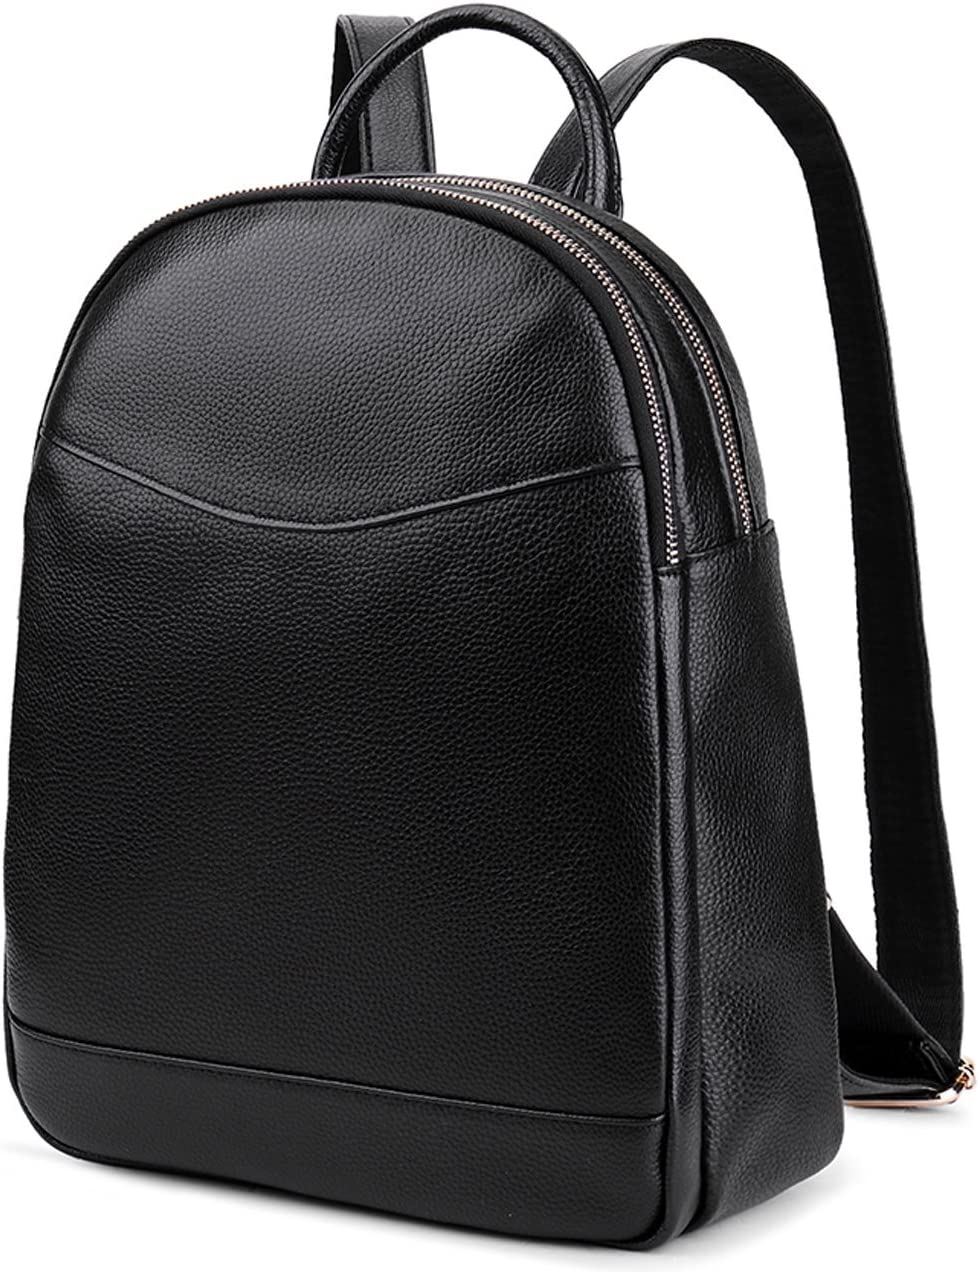 Coolcy Genuine Leather Backpack for Women Hotstyle Casual Bookbags Black